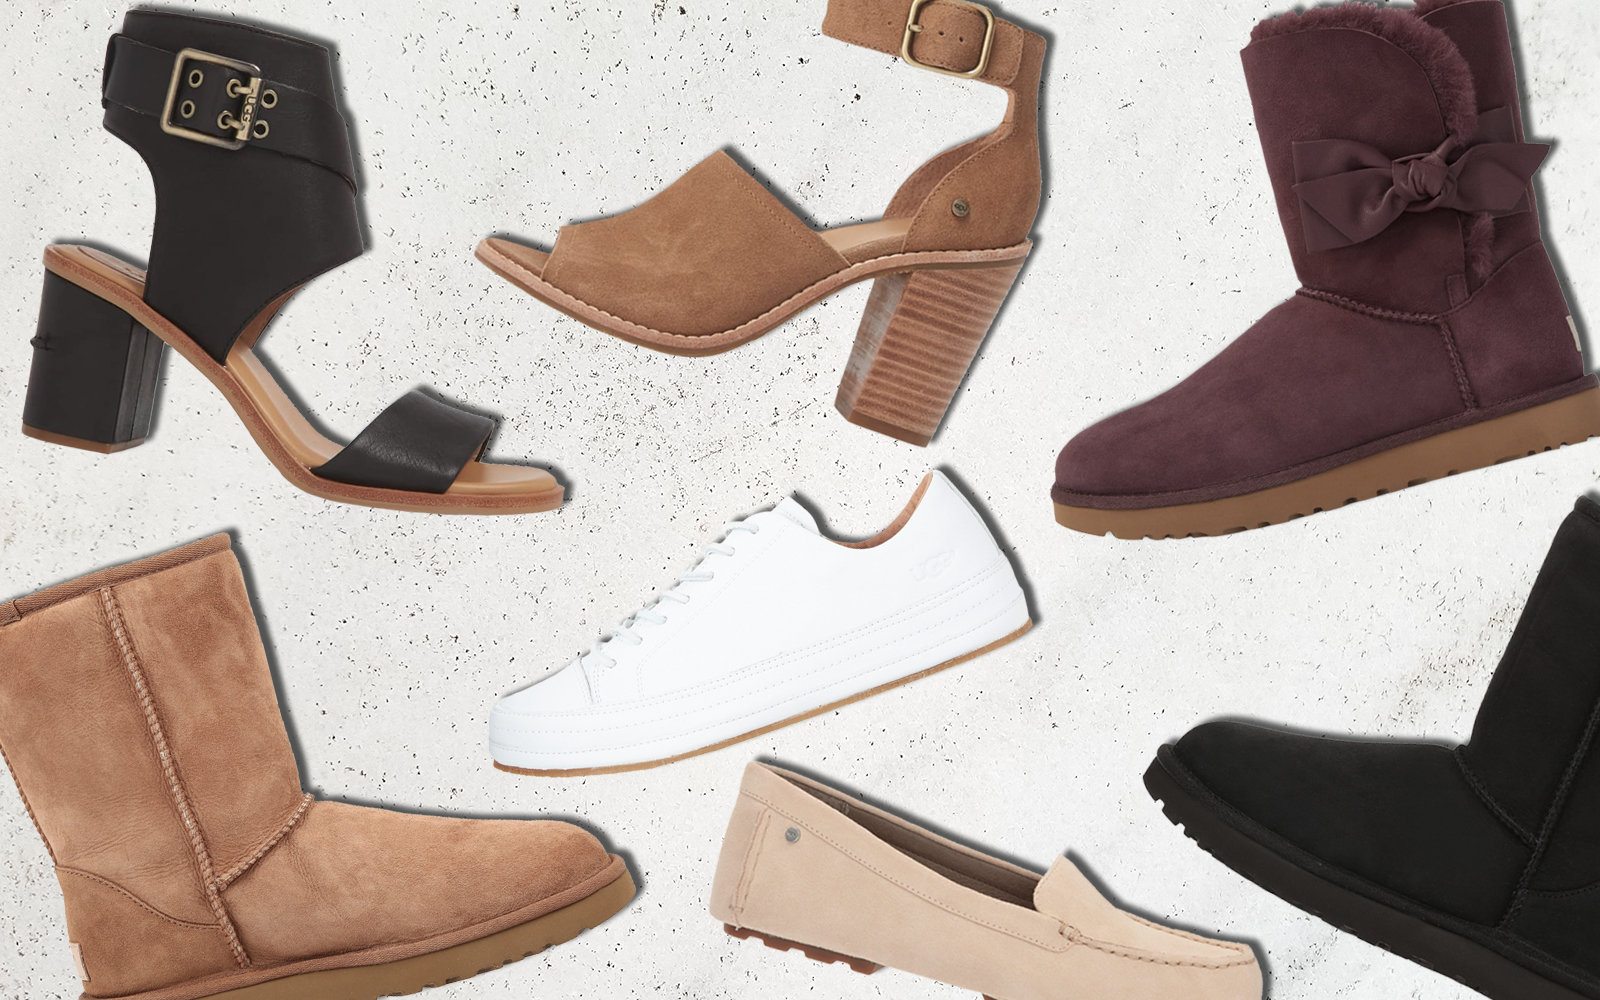 d0d3595b9a1 Behind the Rise, Fall and Revival of the Ugg Boot